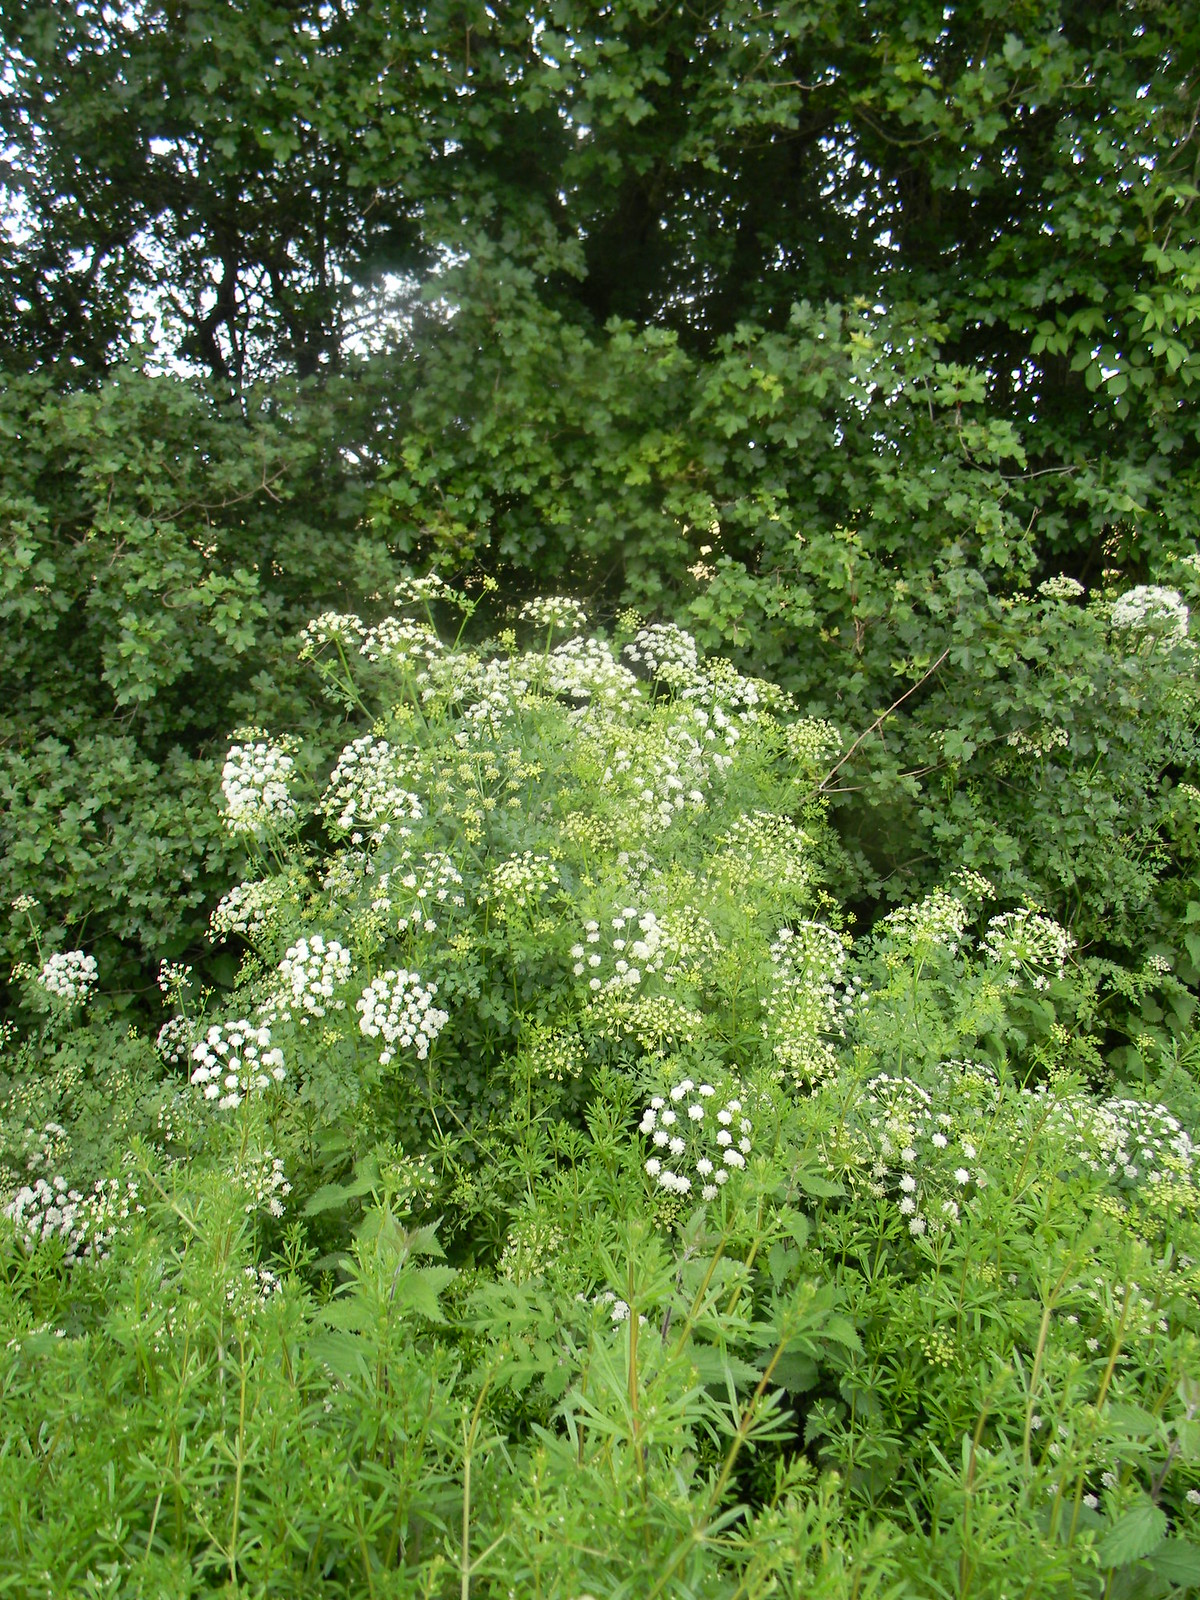 "Hemlock Water Dropwort Britains most poisonous plant emj.bmj.com/content/19/5/472.full"" rel=""nofollow emj.bmj.com/content/19/5/472.full Uckfield to Lewes"